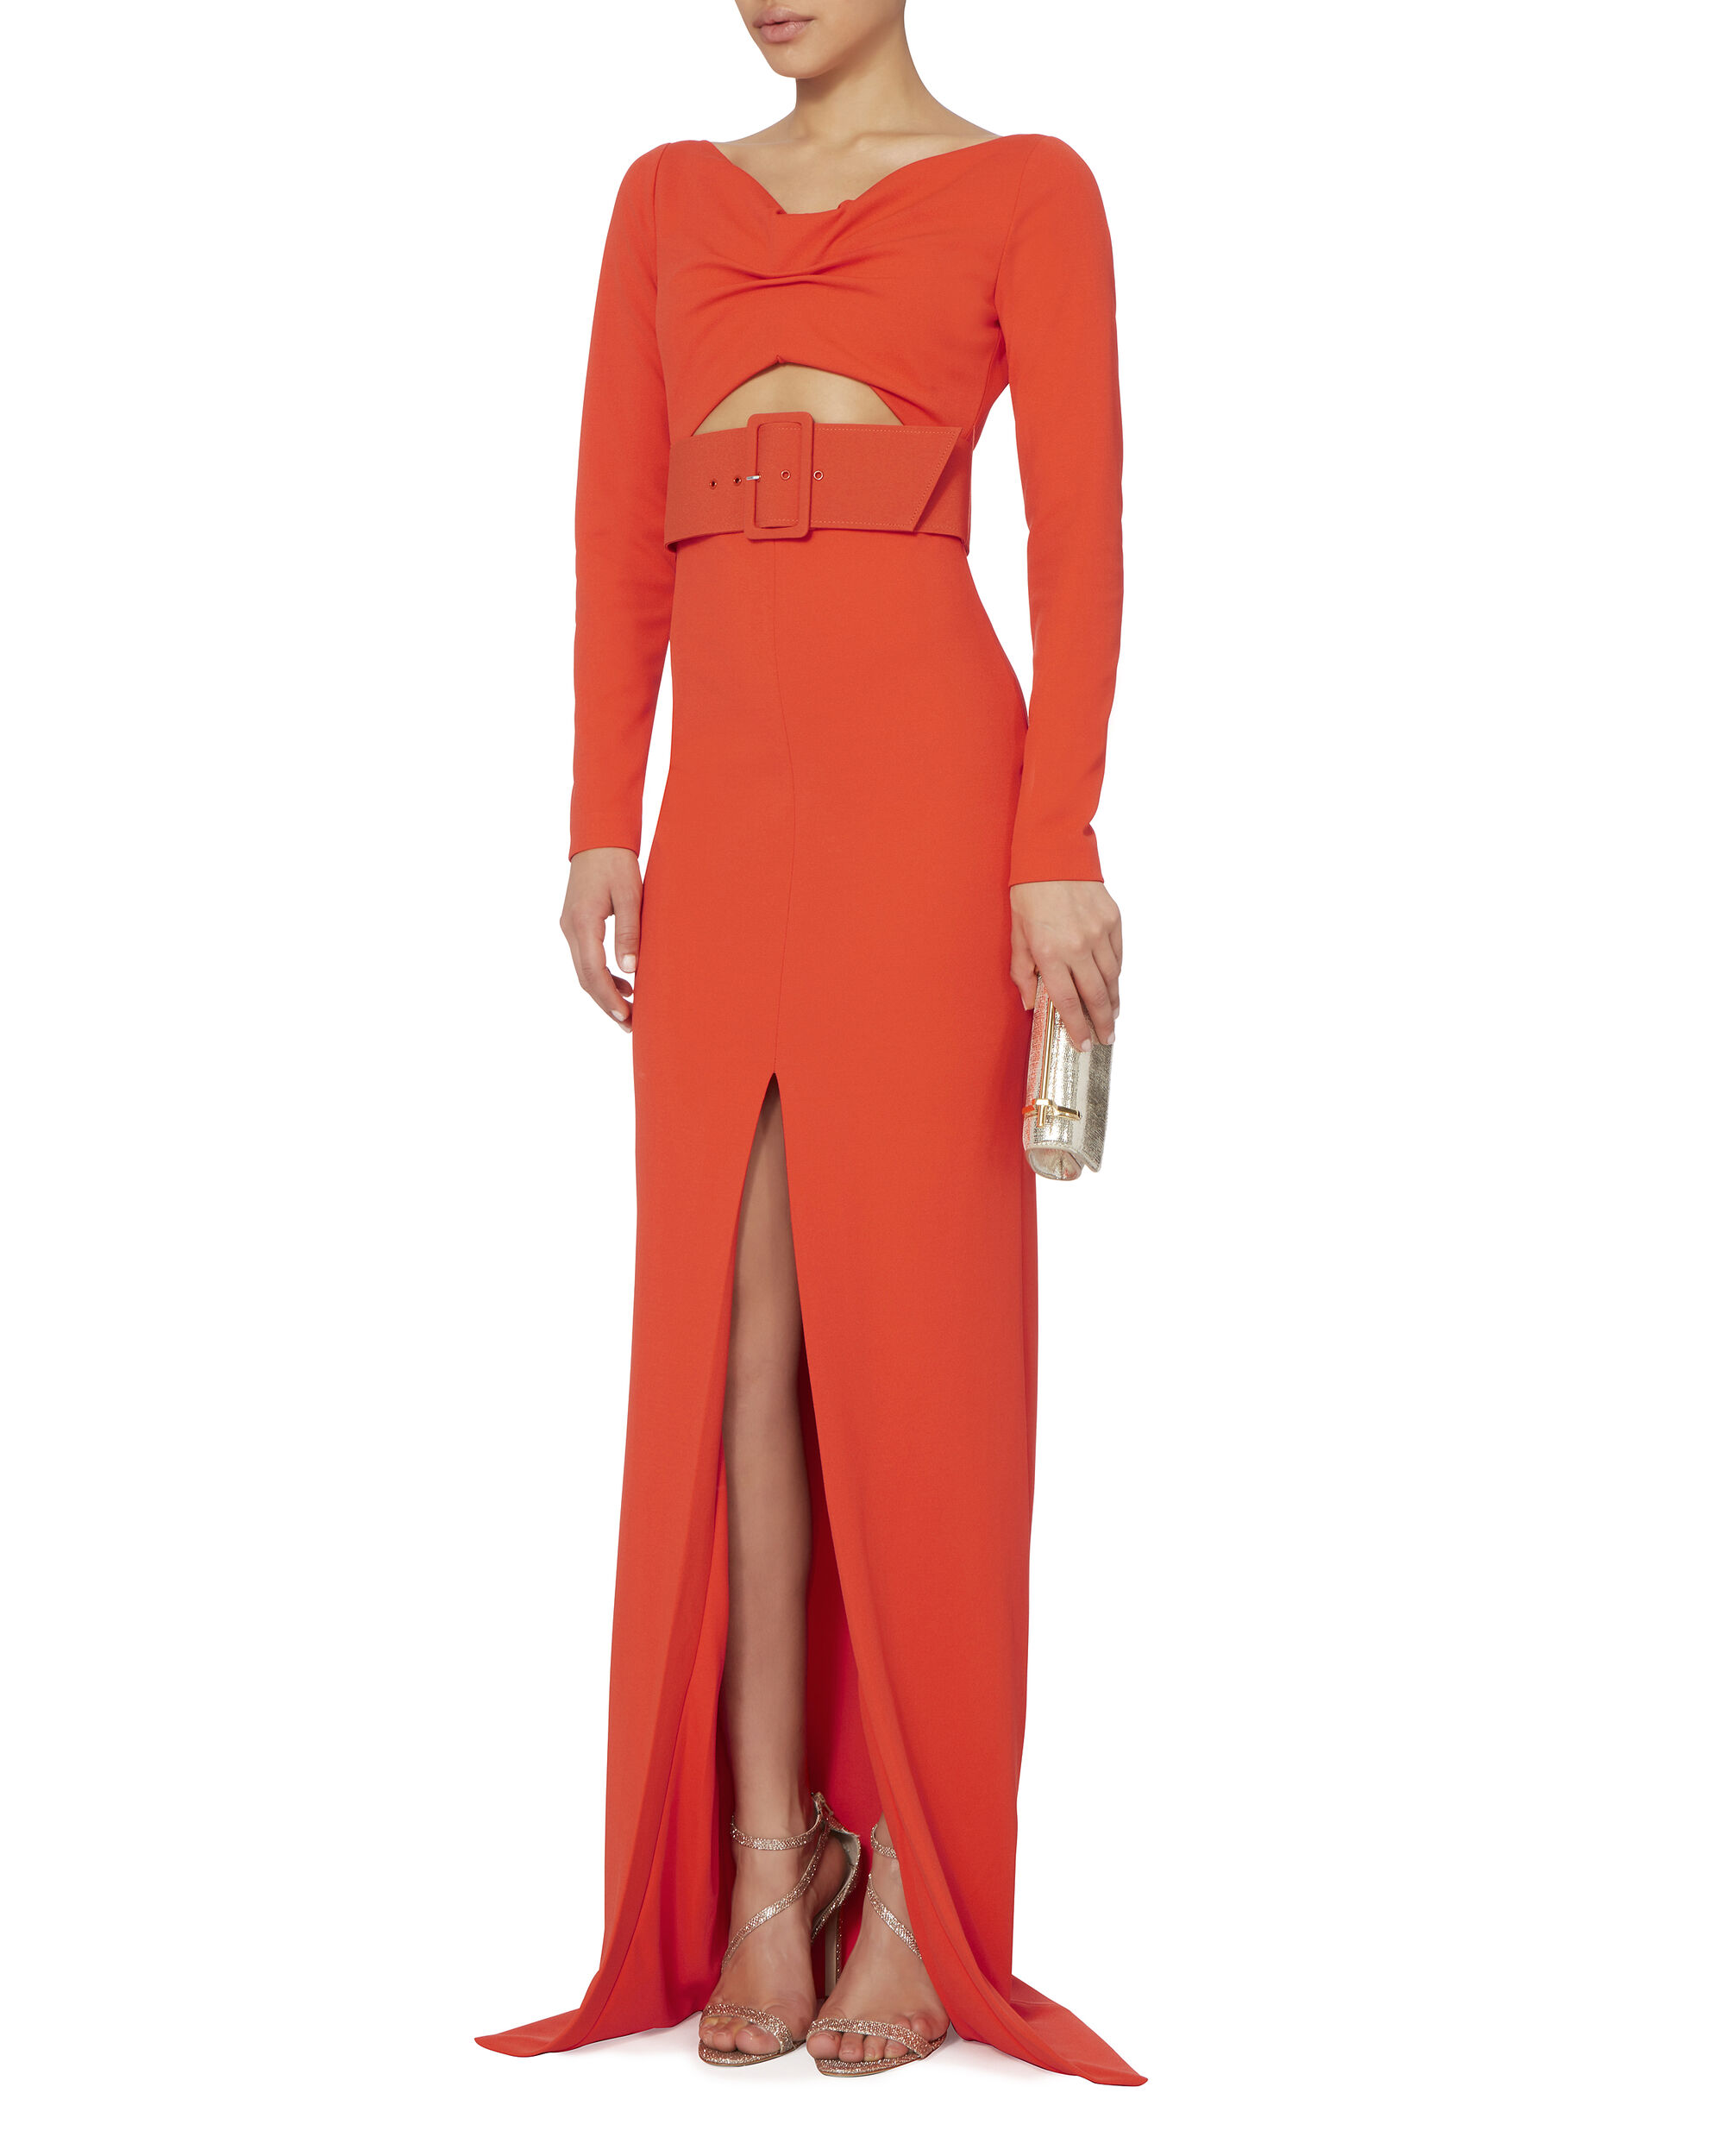 Adalene Belted Maxi Dress, RED, hi-res